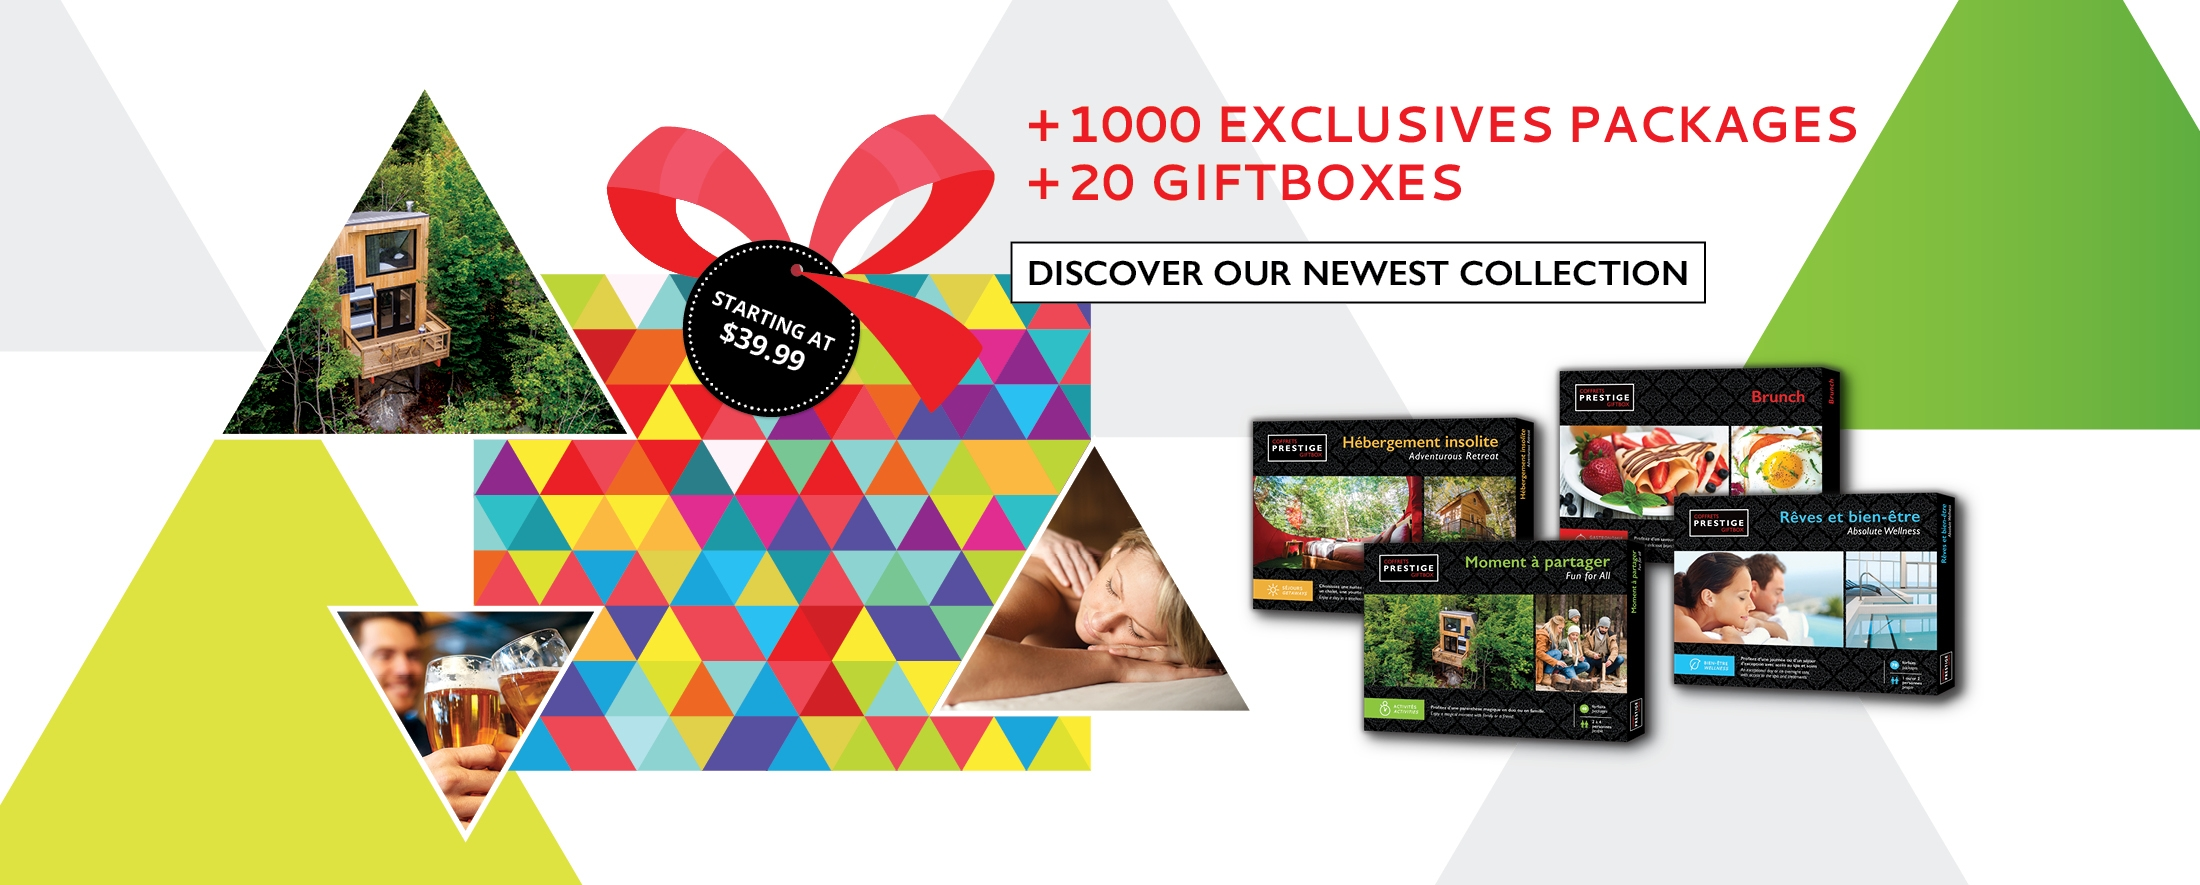 +1000 EXCLUSIVES PACKAGES +20 GIFTBOXES